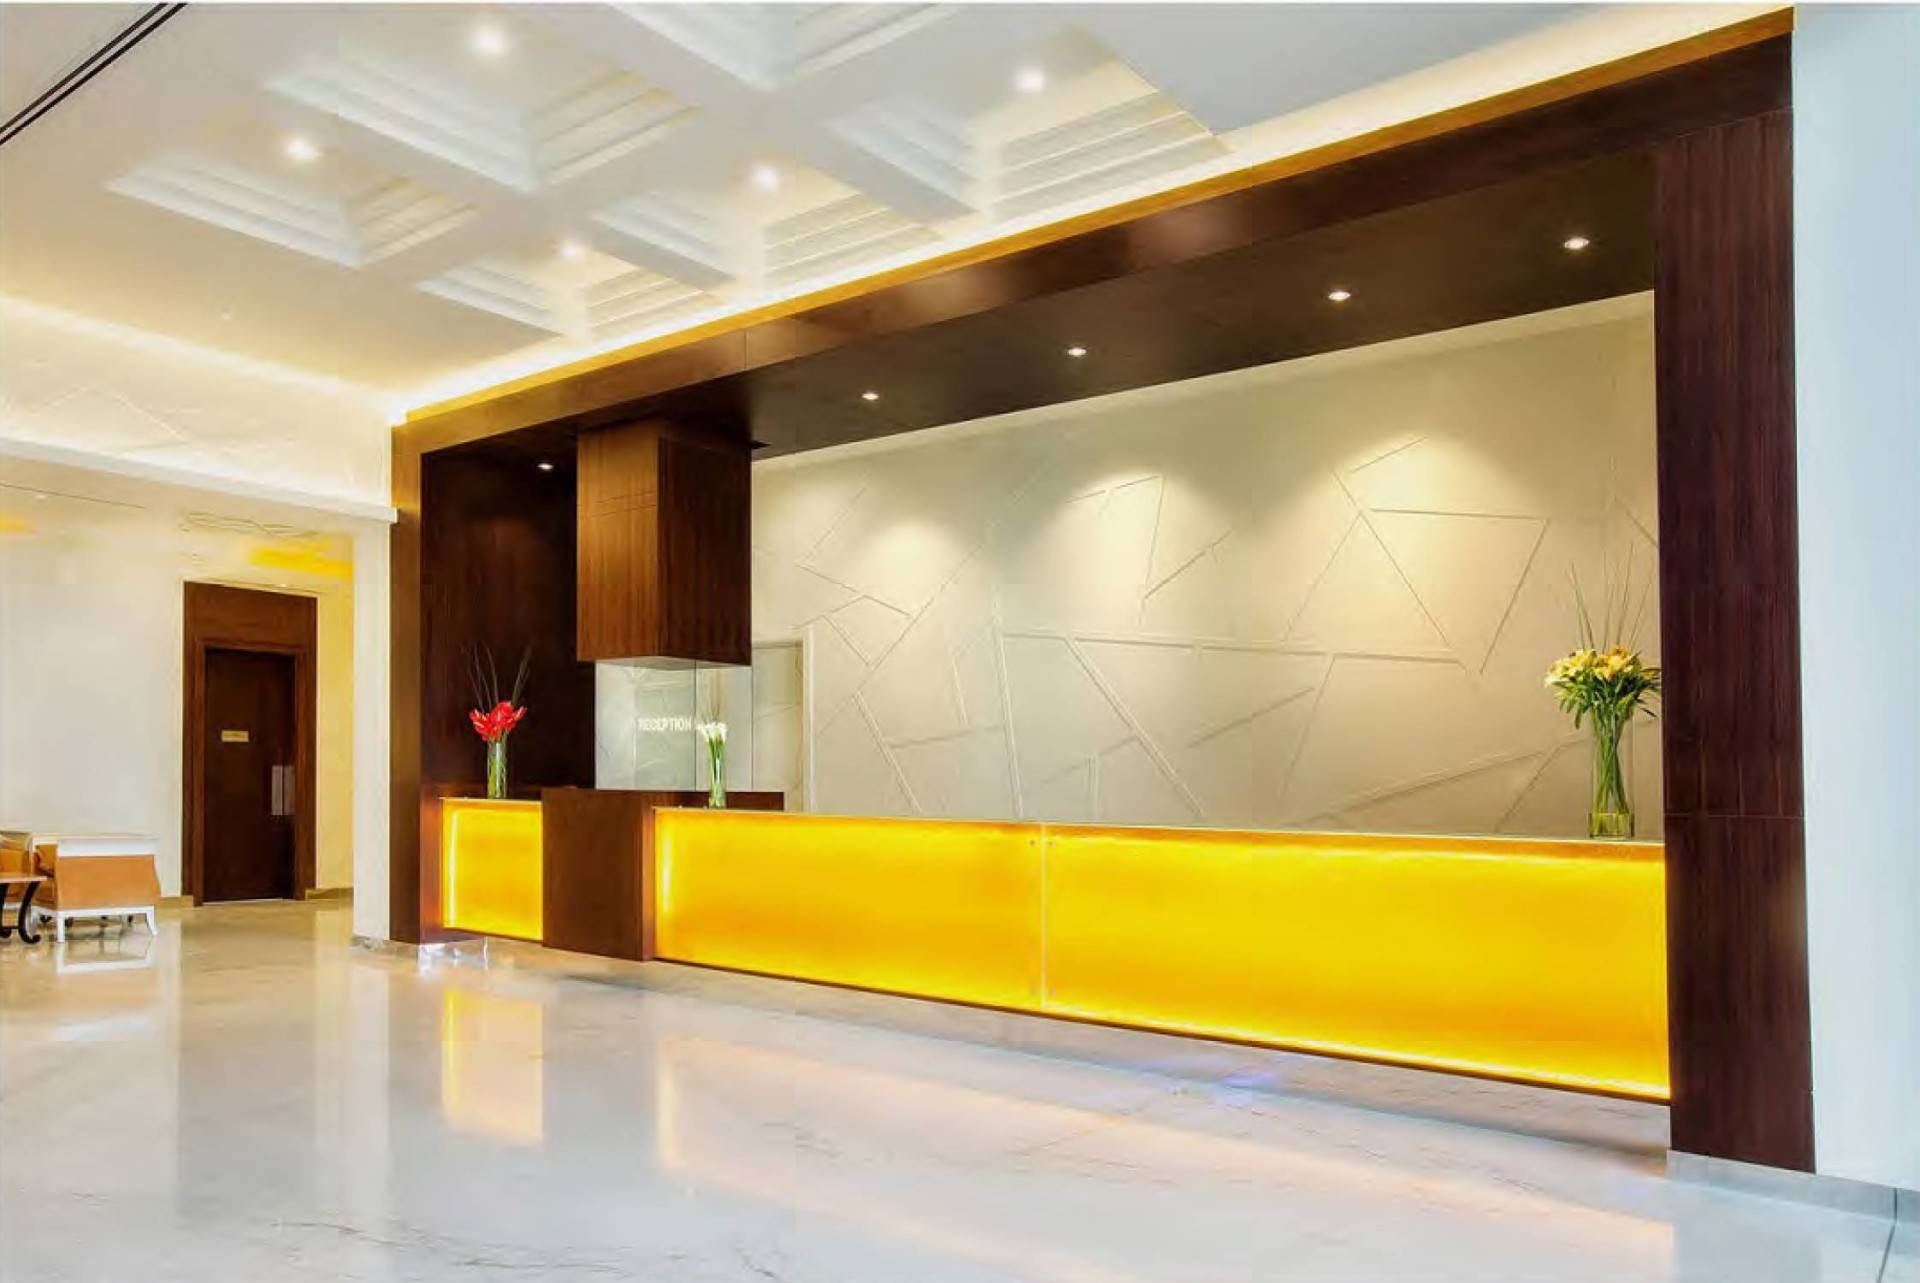 Mul I.d Design Consultant Ghaya Grand Hotel At Dubai United Arab Emirates United Arab Emirates Lobby-Lounge   3873